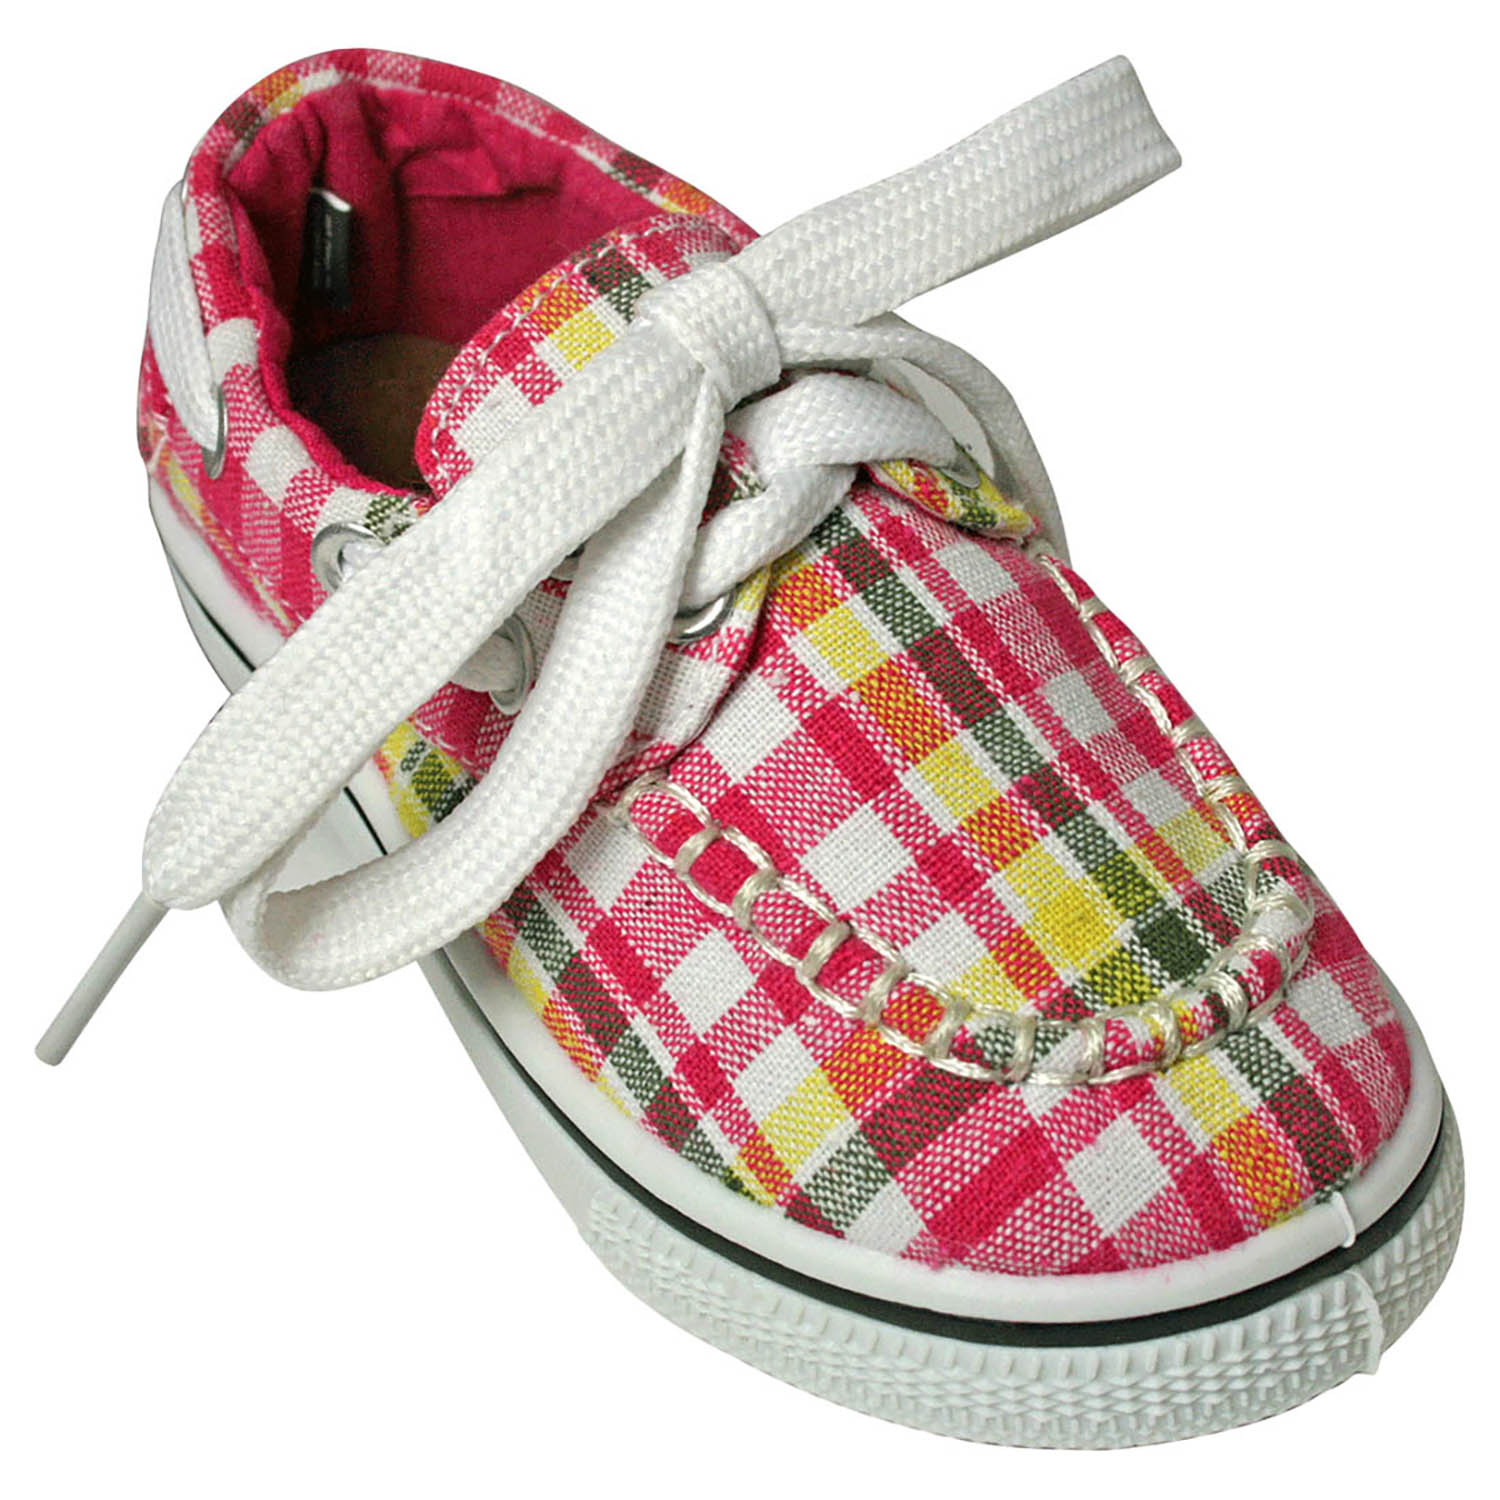 Dawgs Girls' Kaymann Boat Shoes